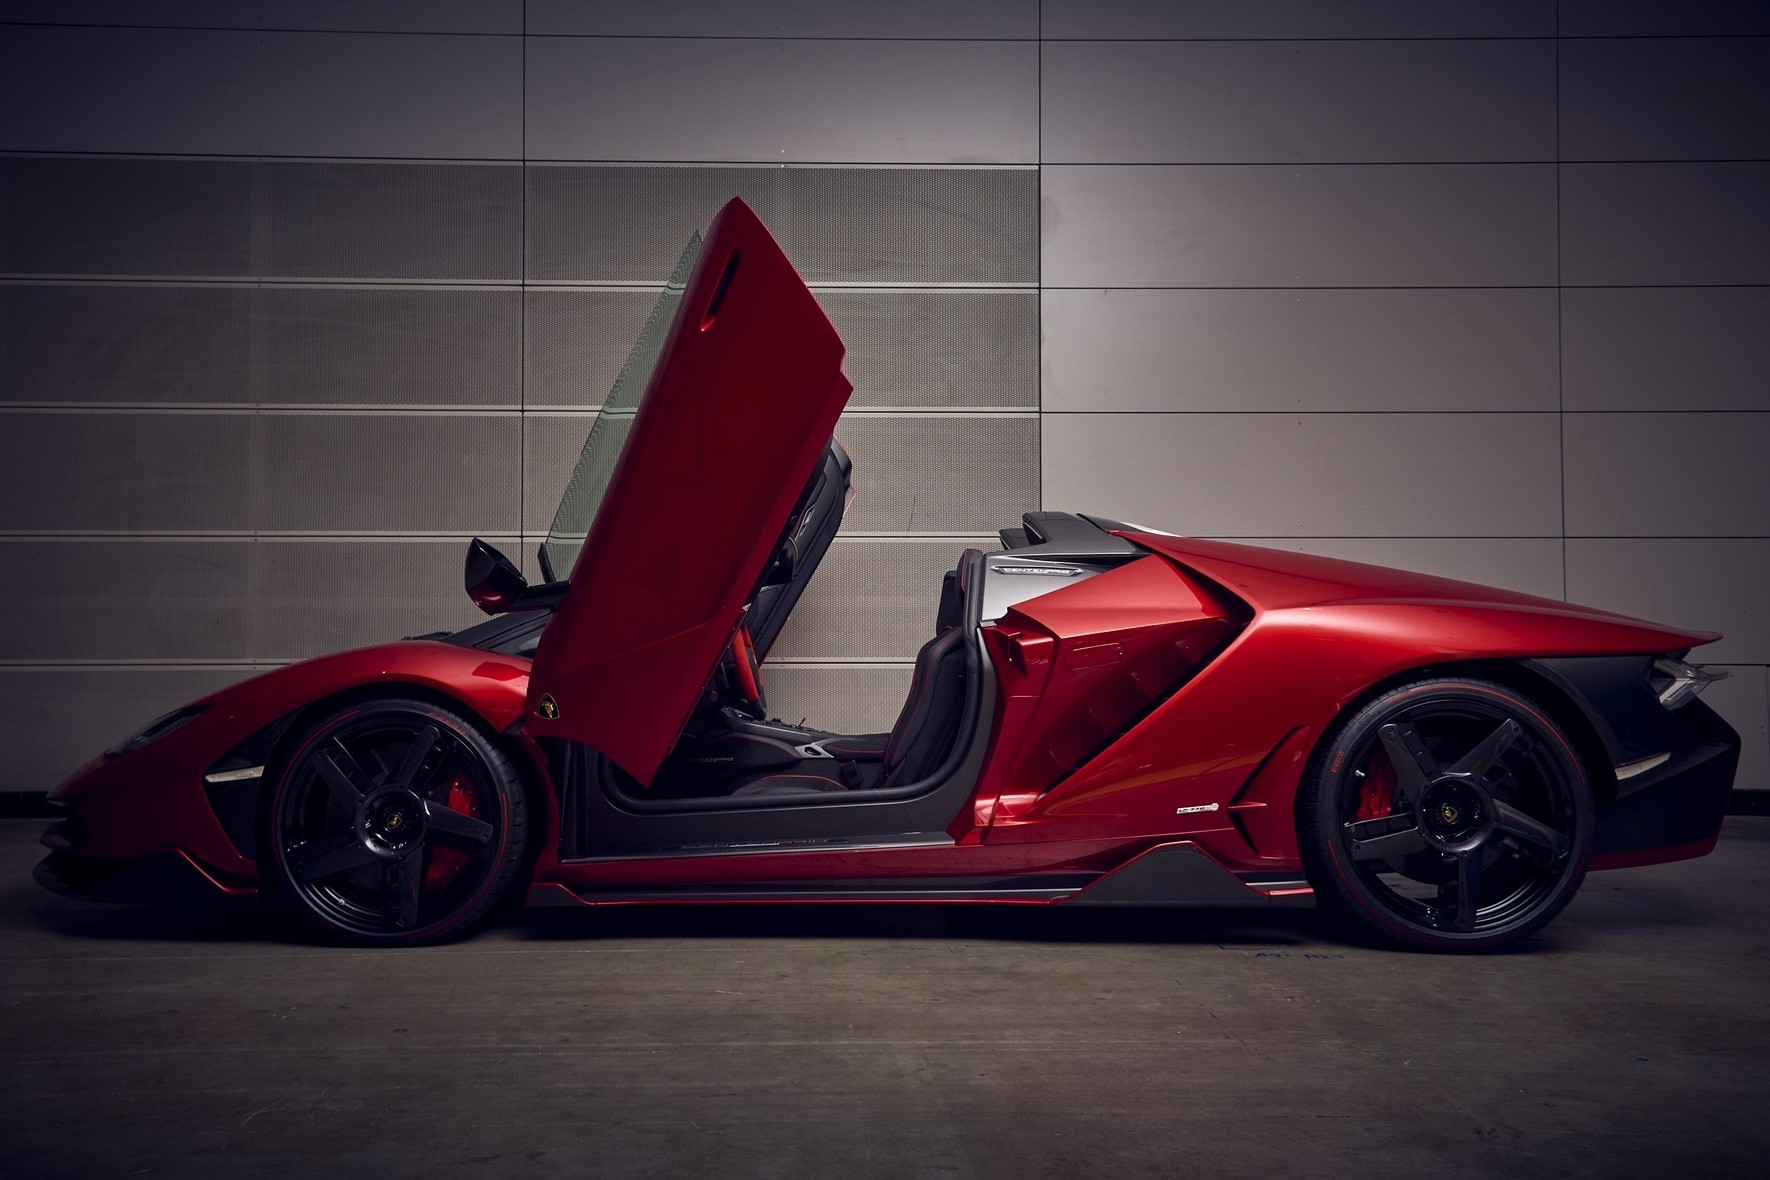 The best looking hypercars and supercars you can actually buy right now